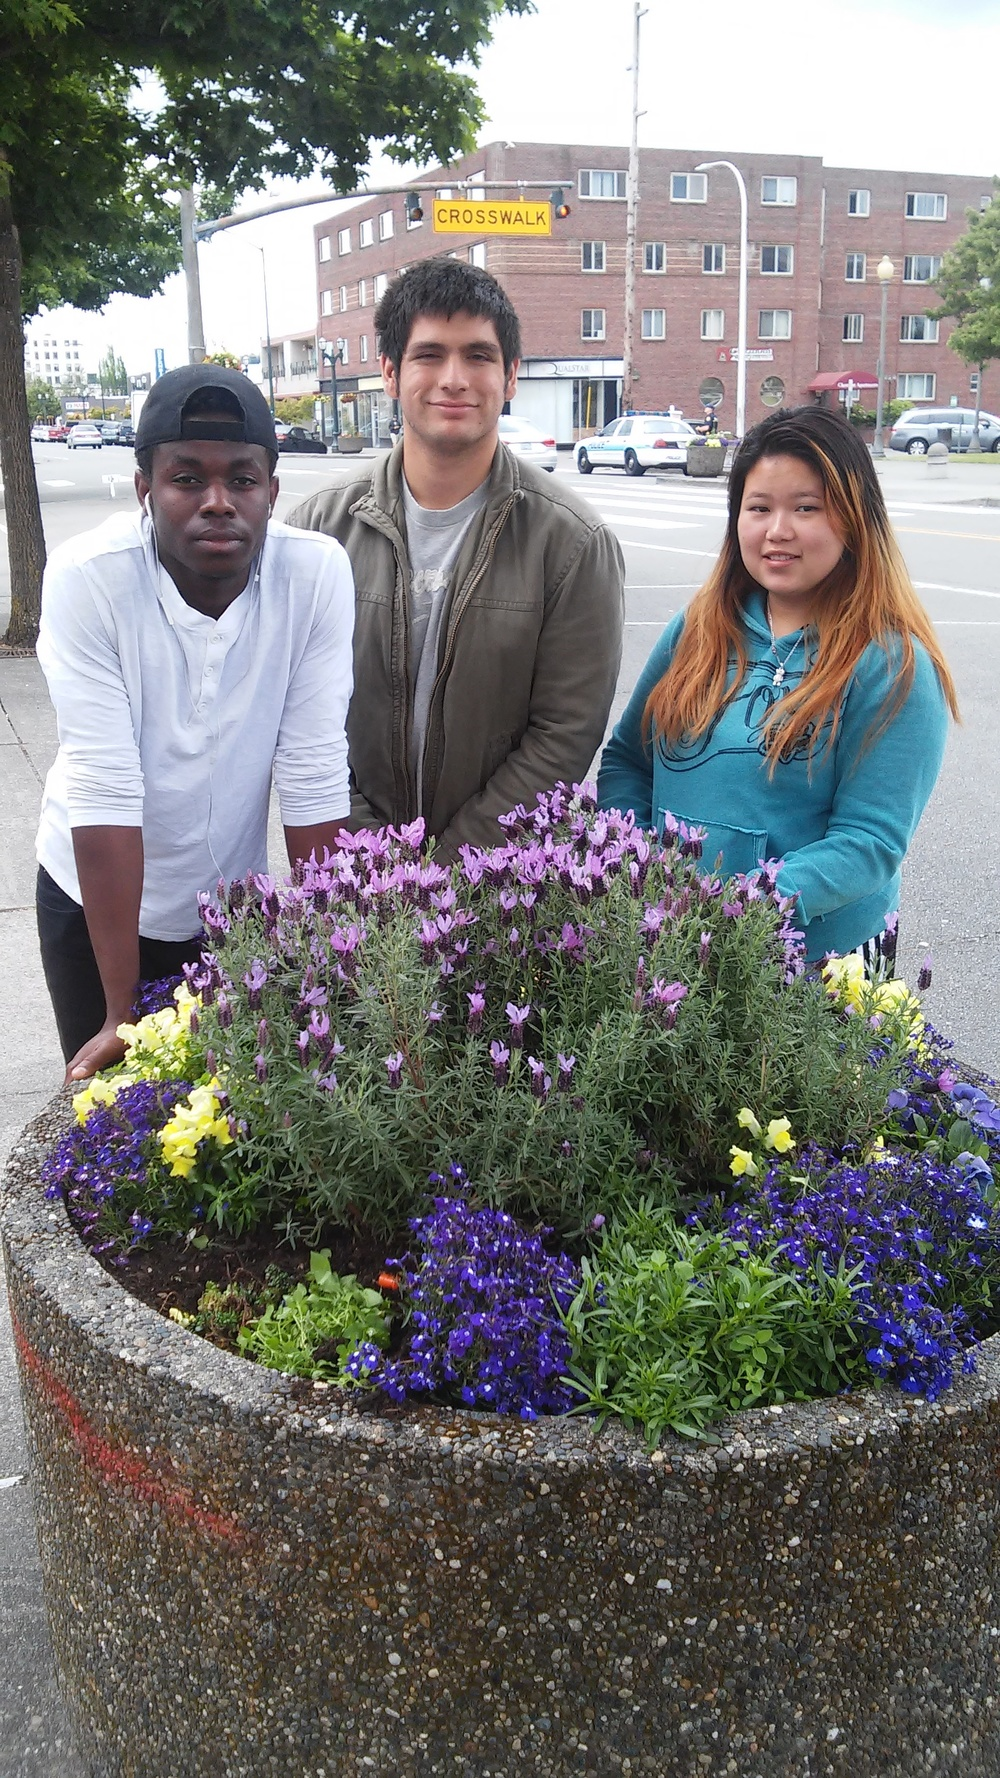 Students proudly stand by their school beautification project. Intermixed with ornamental plants are native succulents and ground covers donated through the Schools Plant the Future donation program. The ornamental plants were paid for through other funding.